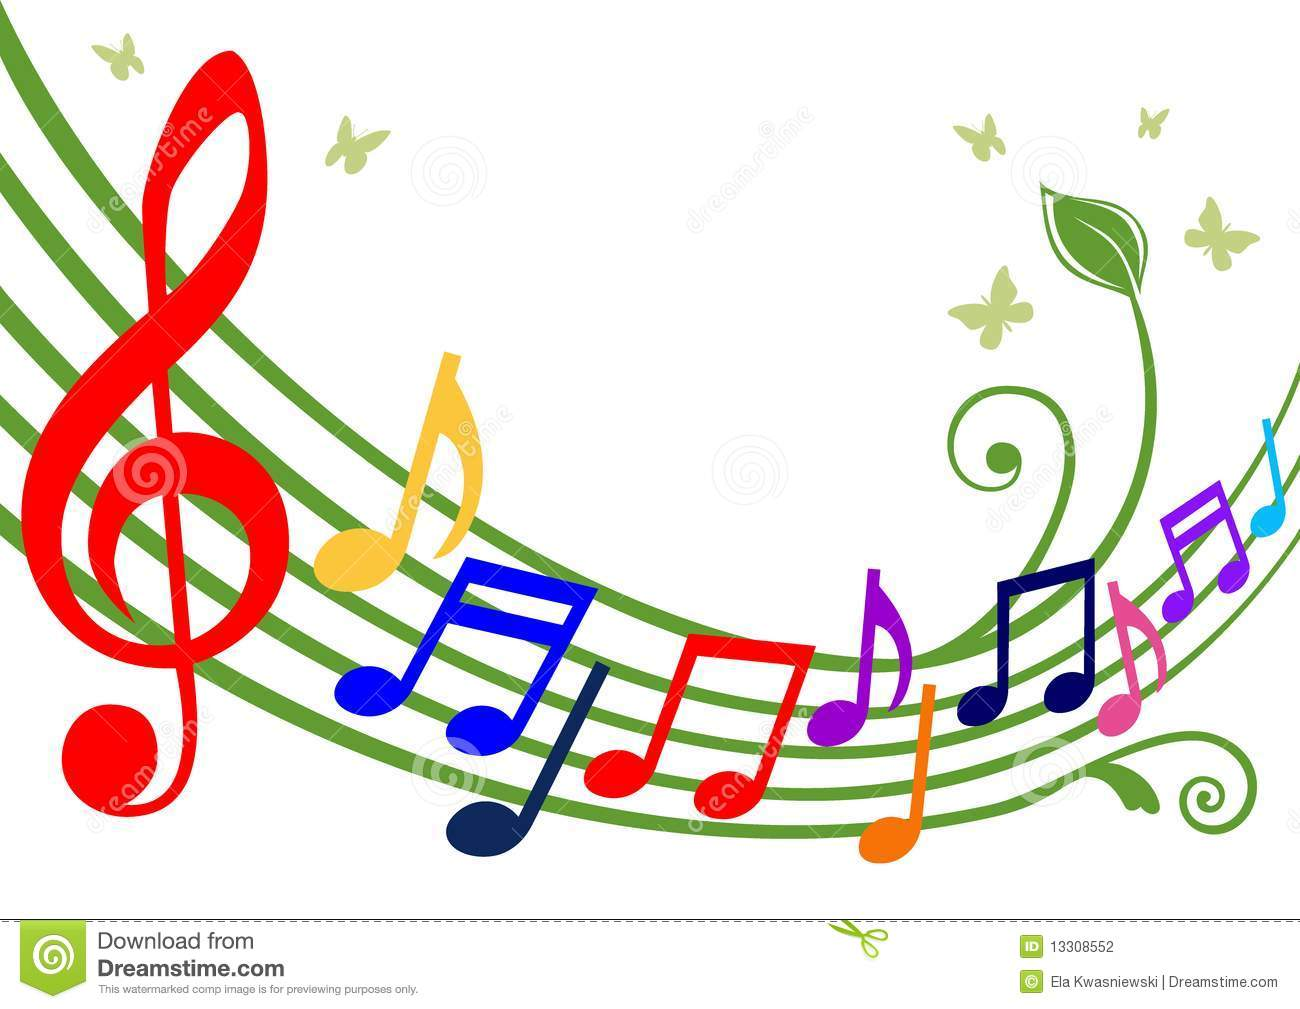 Music Notes clipart spring Background Music Clipart Image Photography